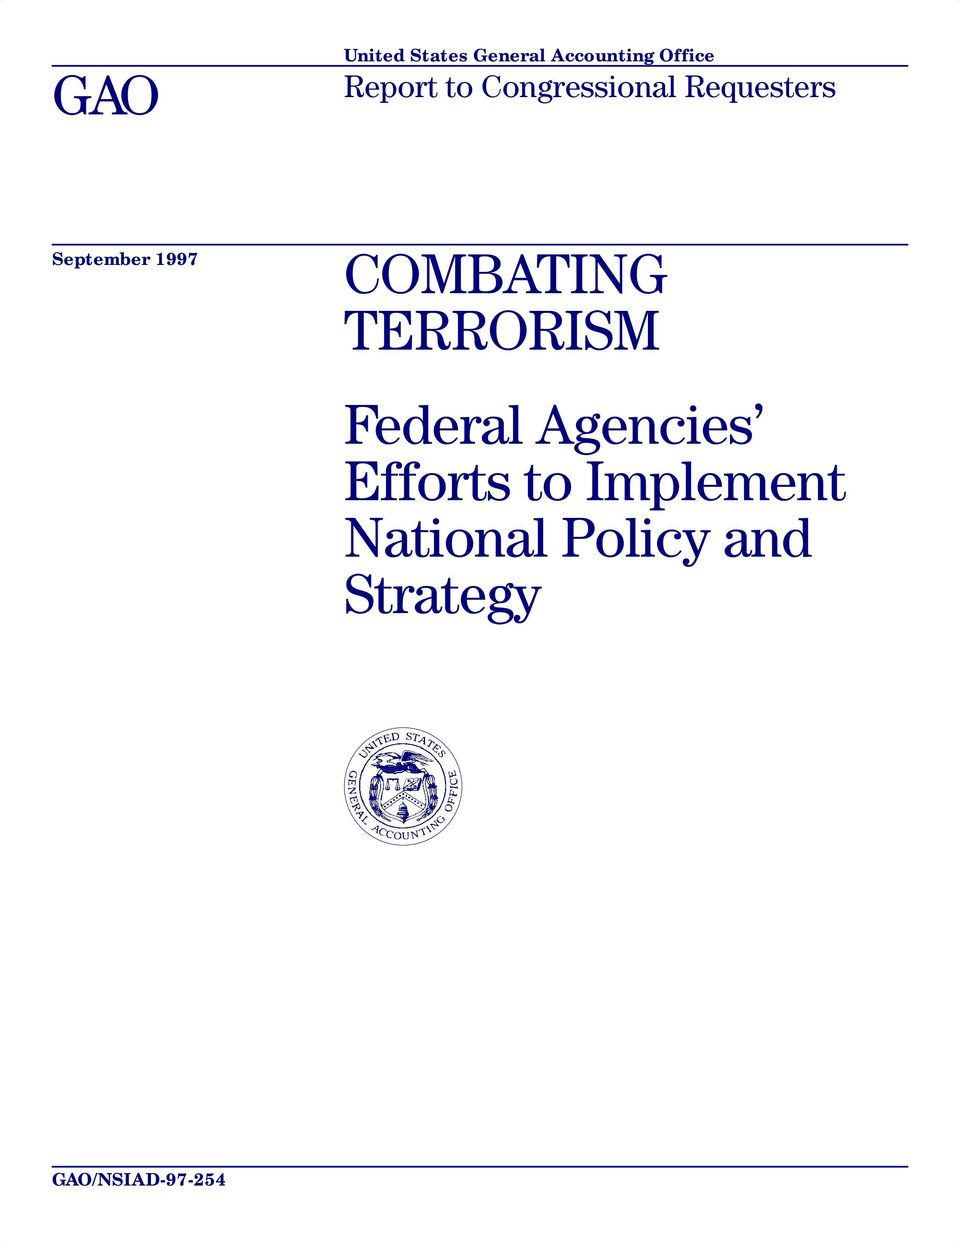 COMBATING TERRORISM Federal Agencies Efforts to